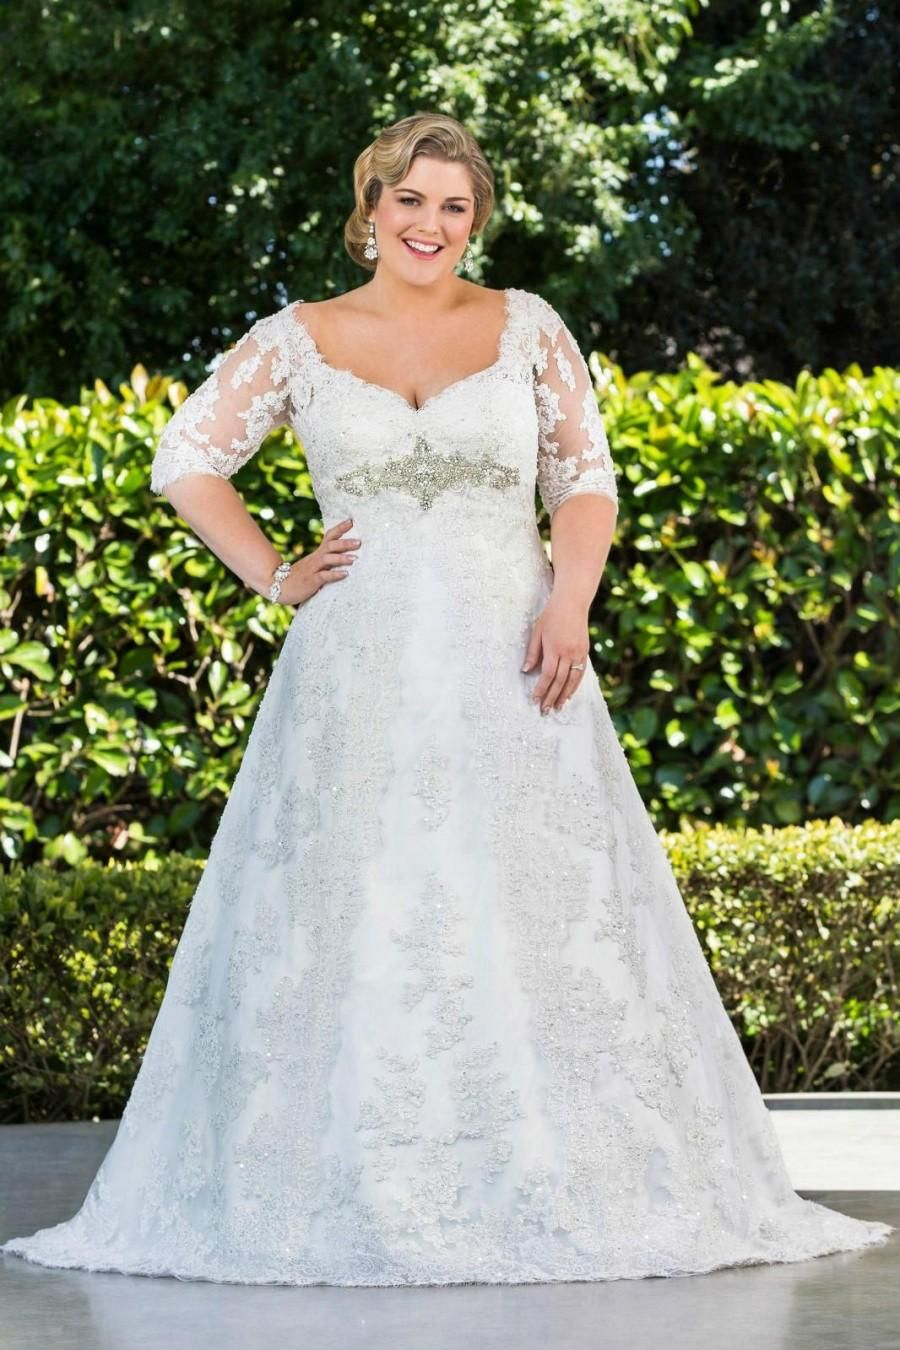 Plus Size Wedding Dresses With Long Sleeves Gone Are The Days When